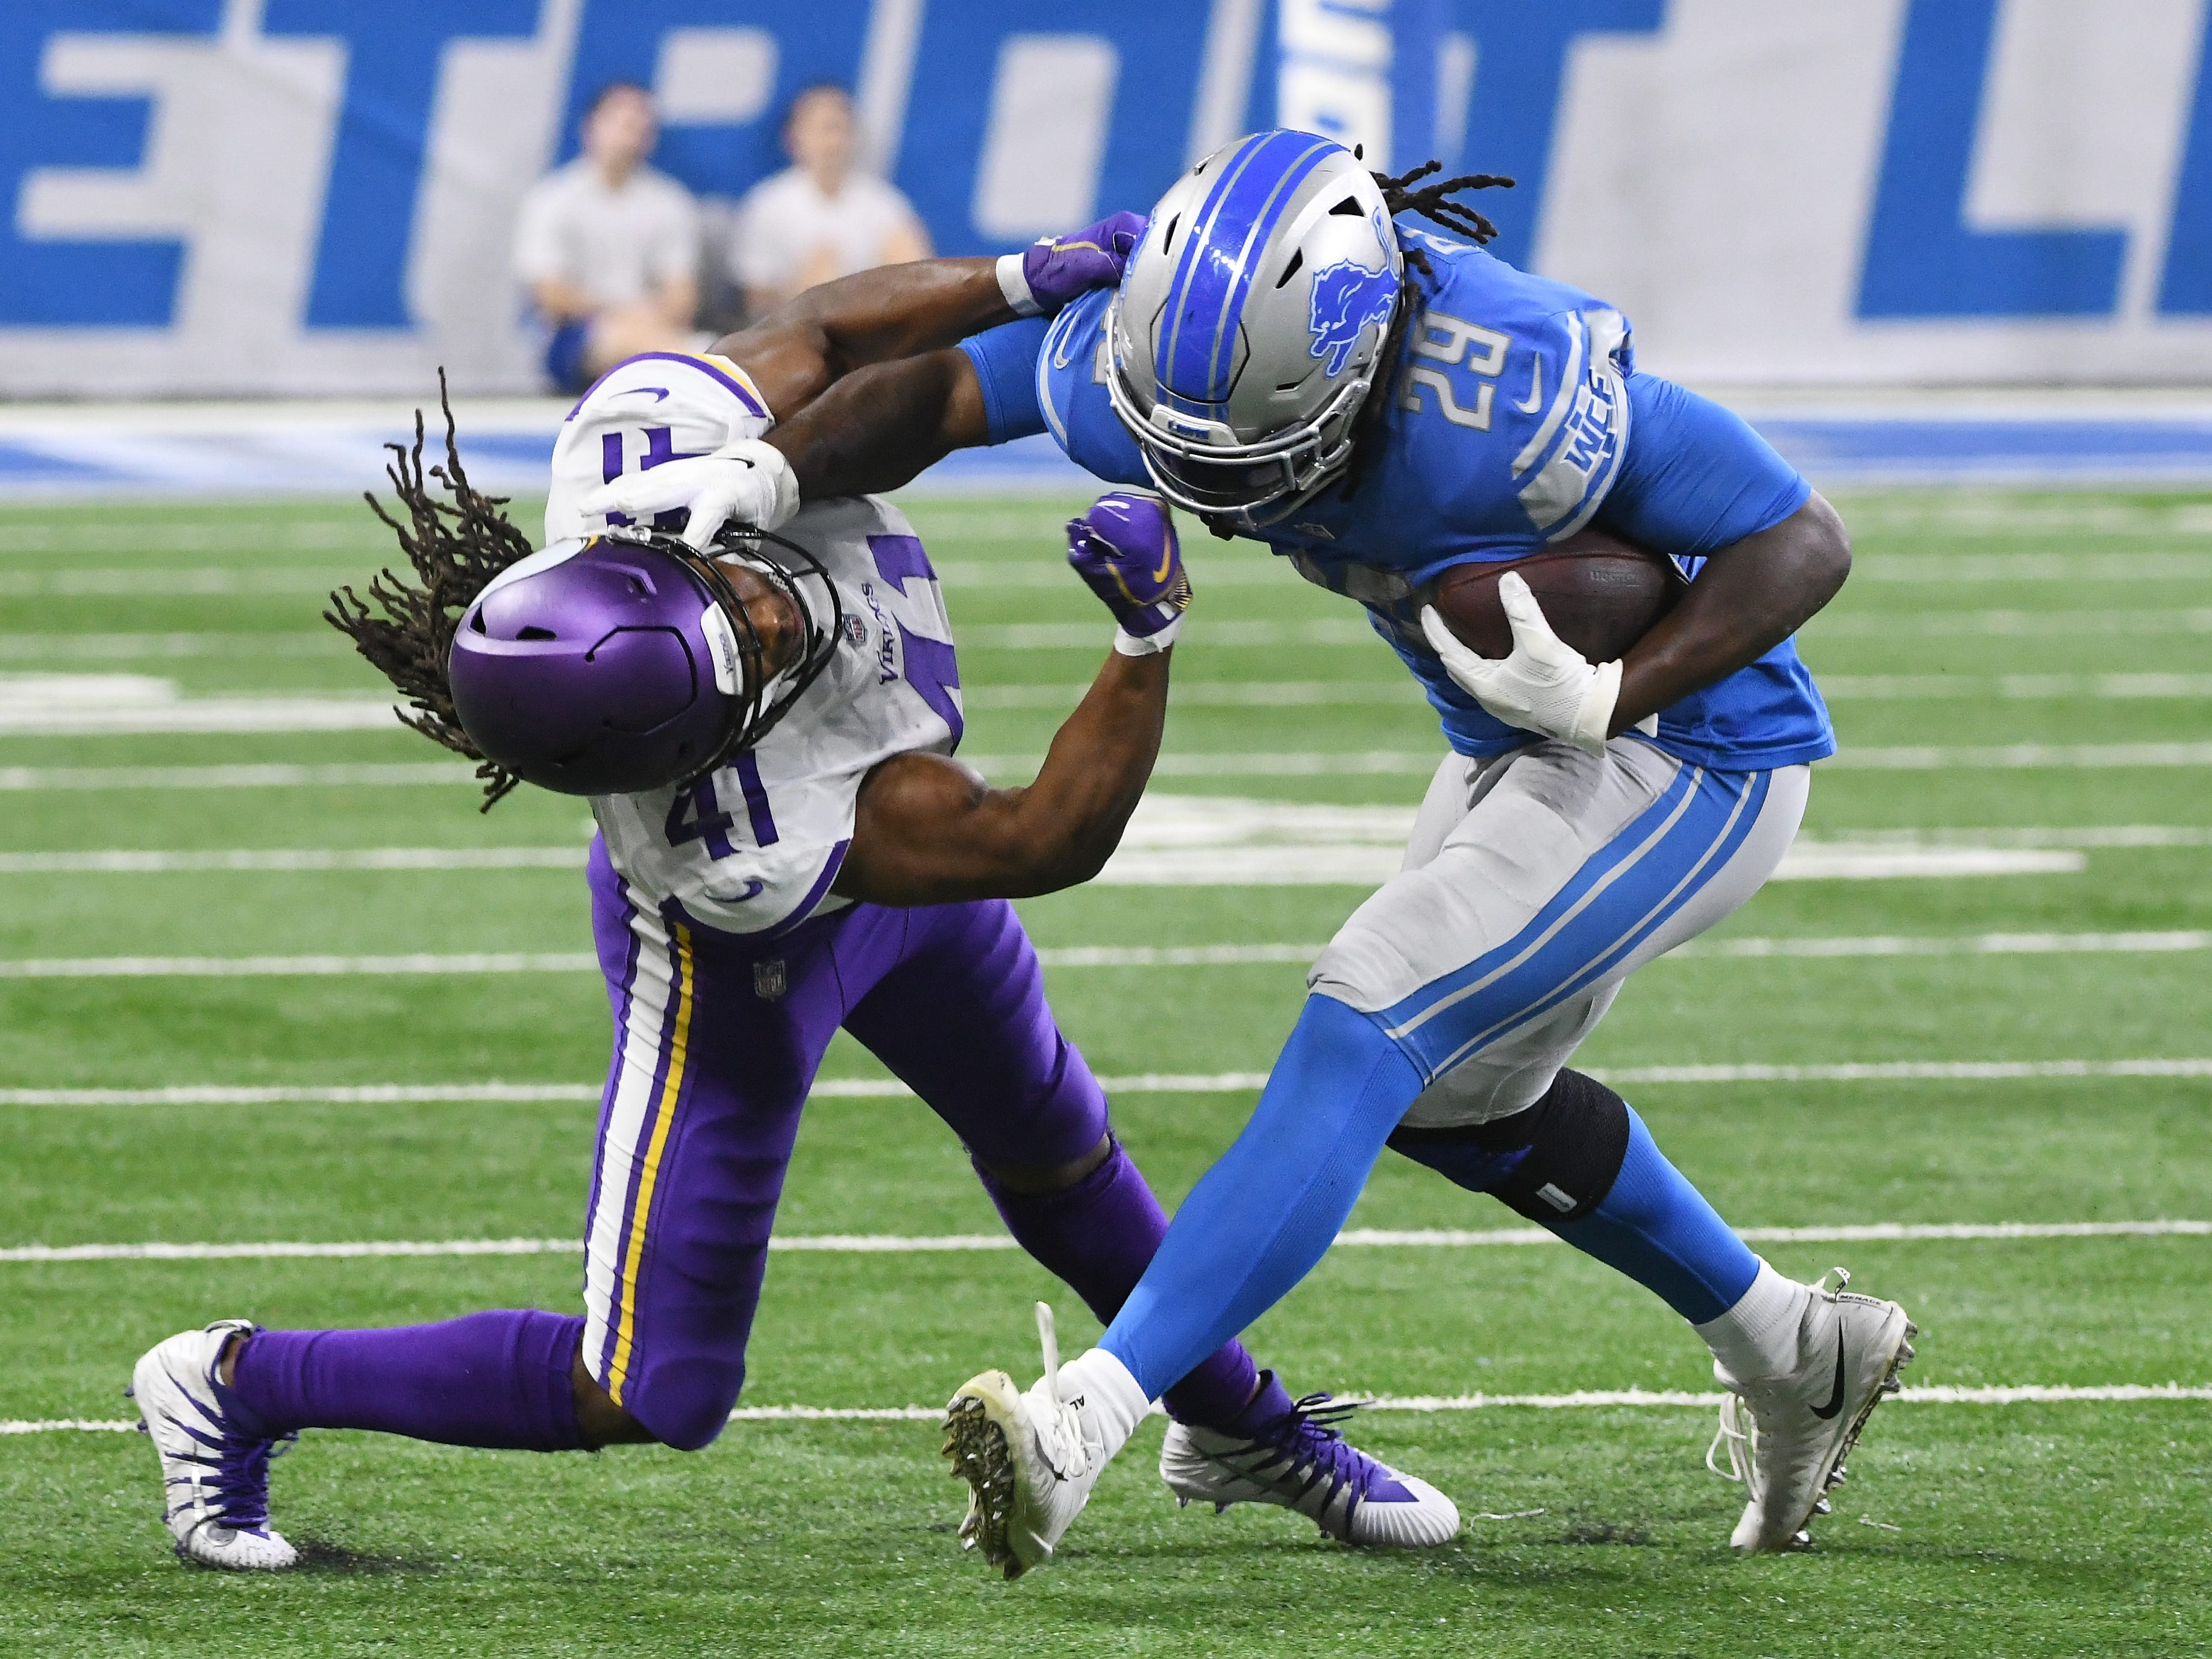 Vikings' Anthony Harris is thrown to the ground by Lions' LeGarrette Blount but still is able to drag him down by his legs in the fourth quarter.